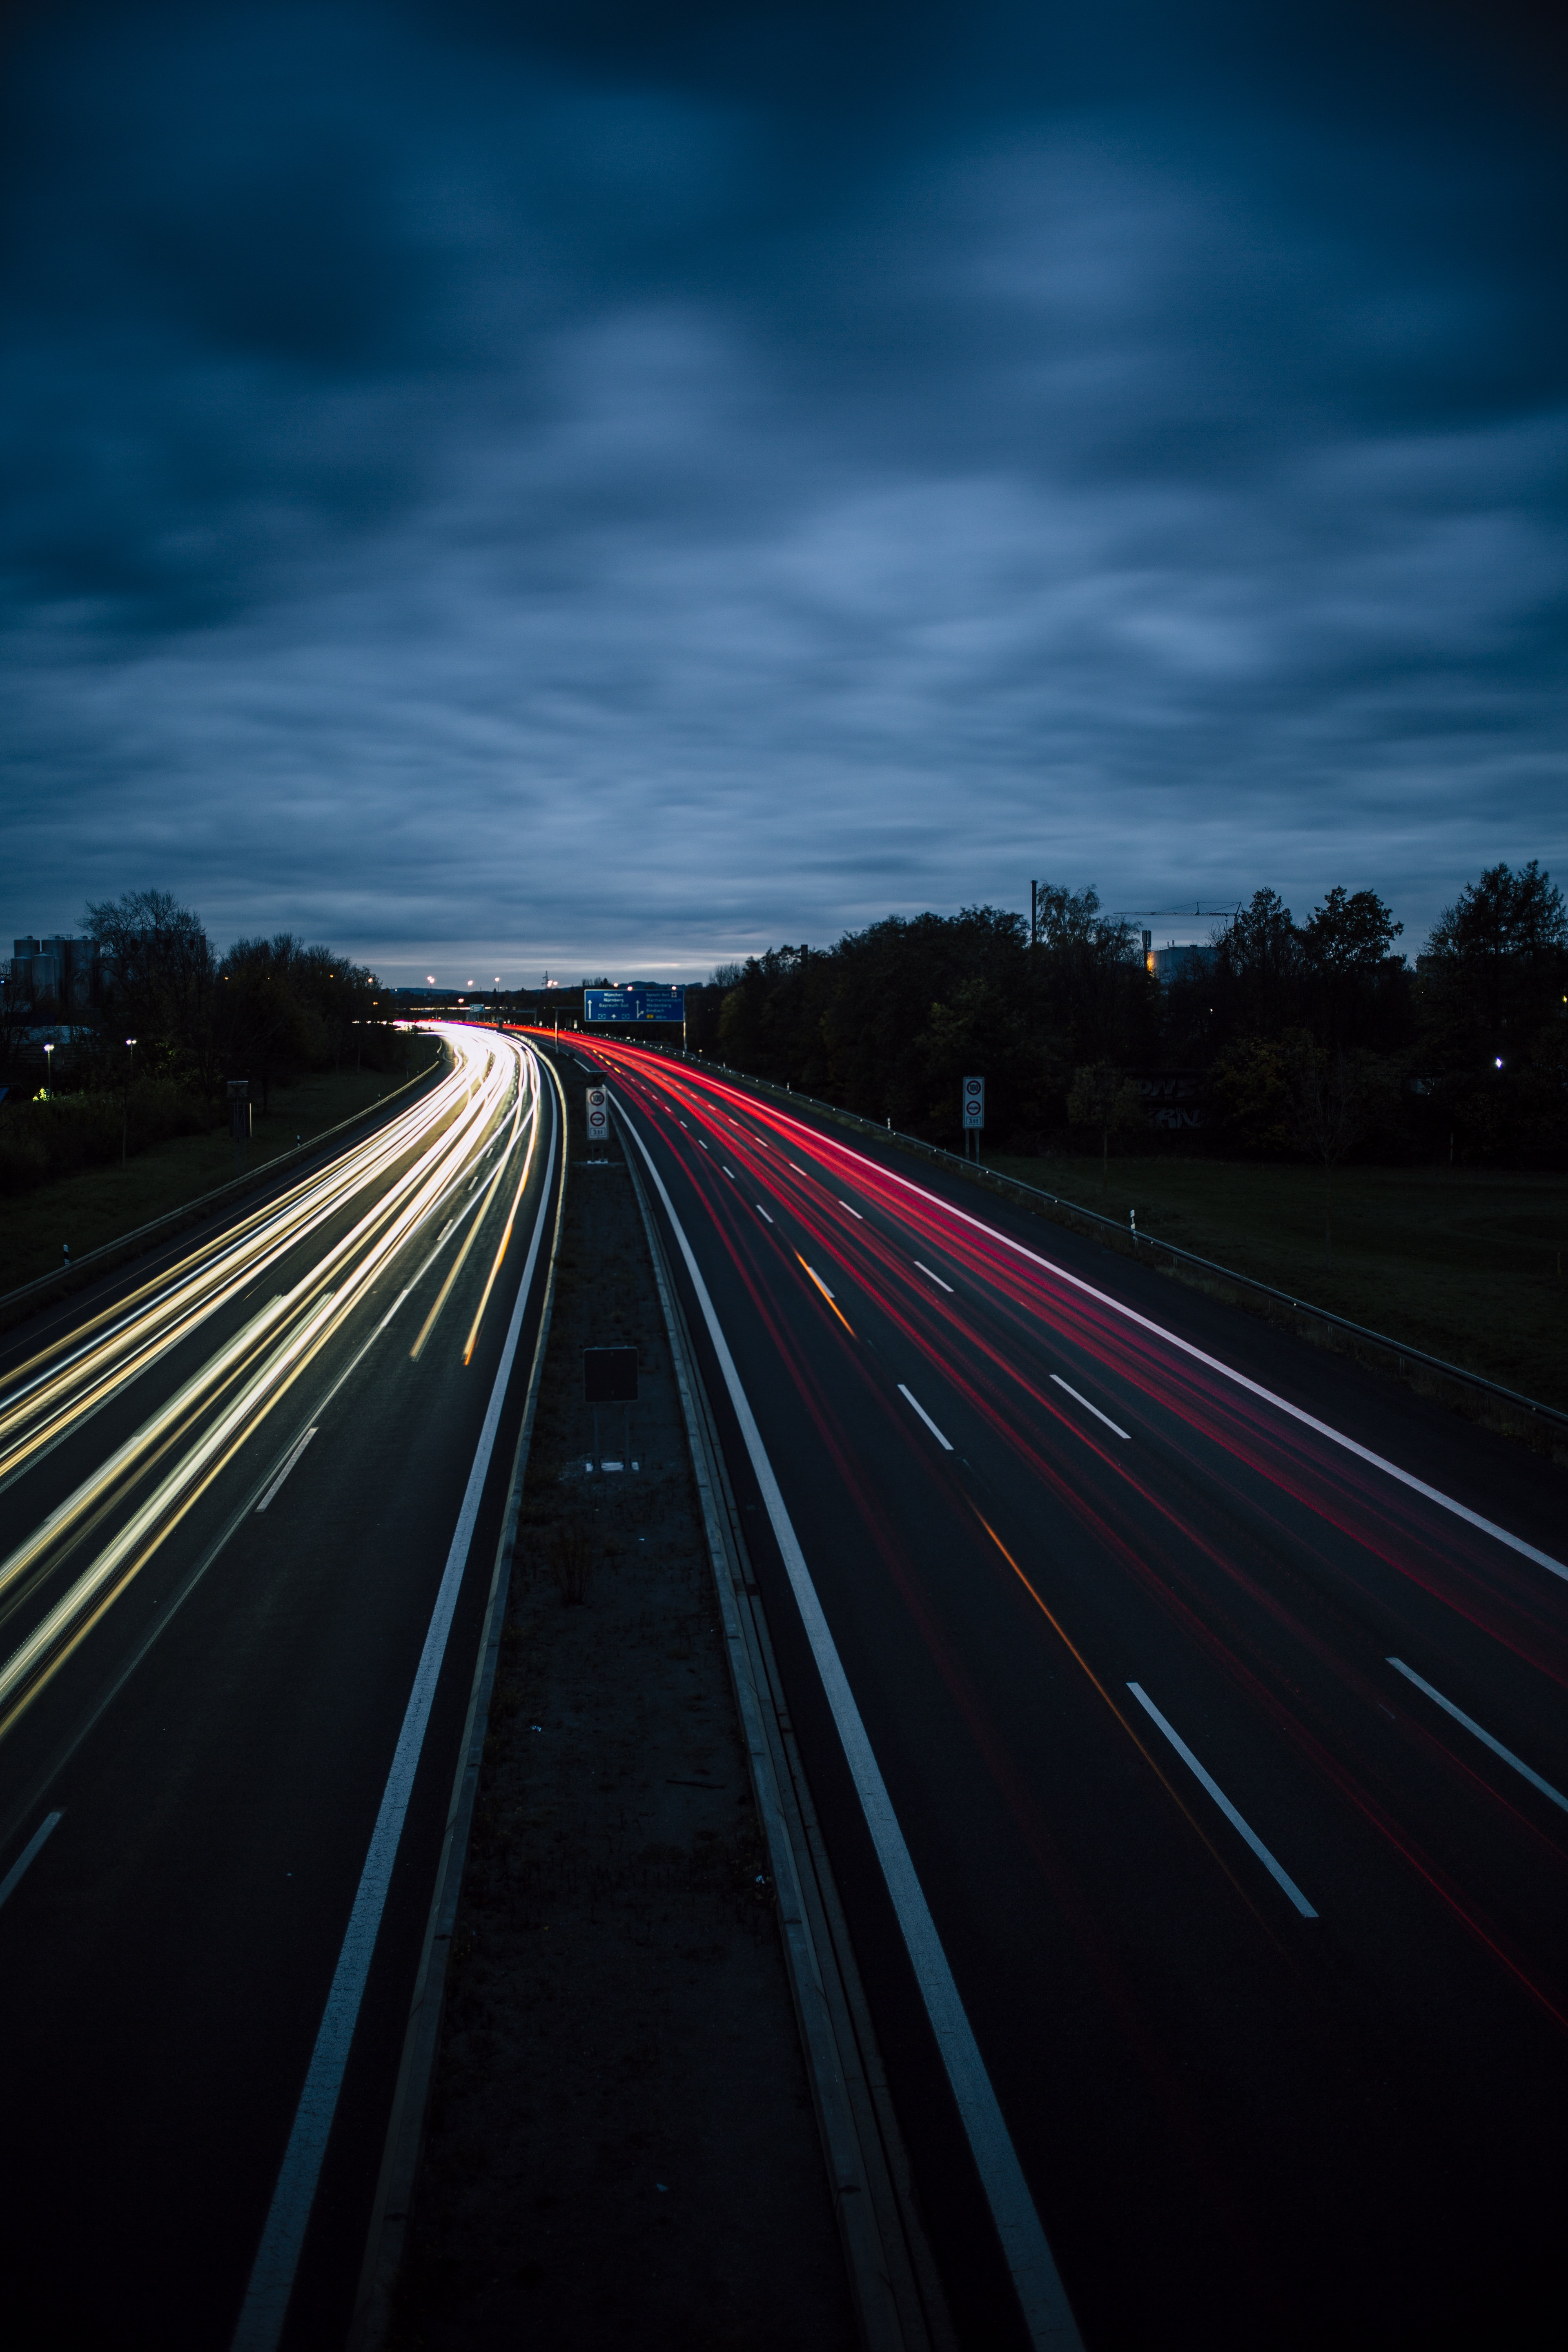 time-lapse photography of vehicle lights on road